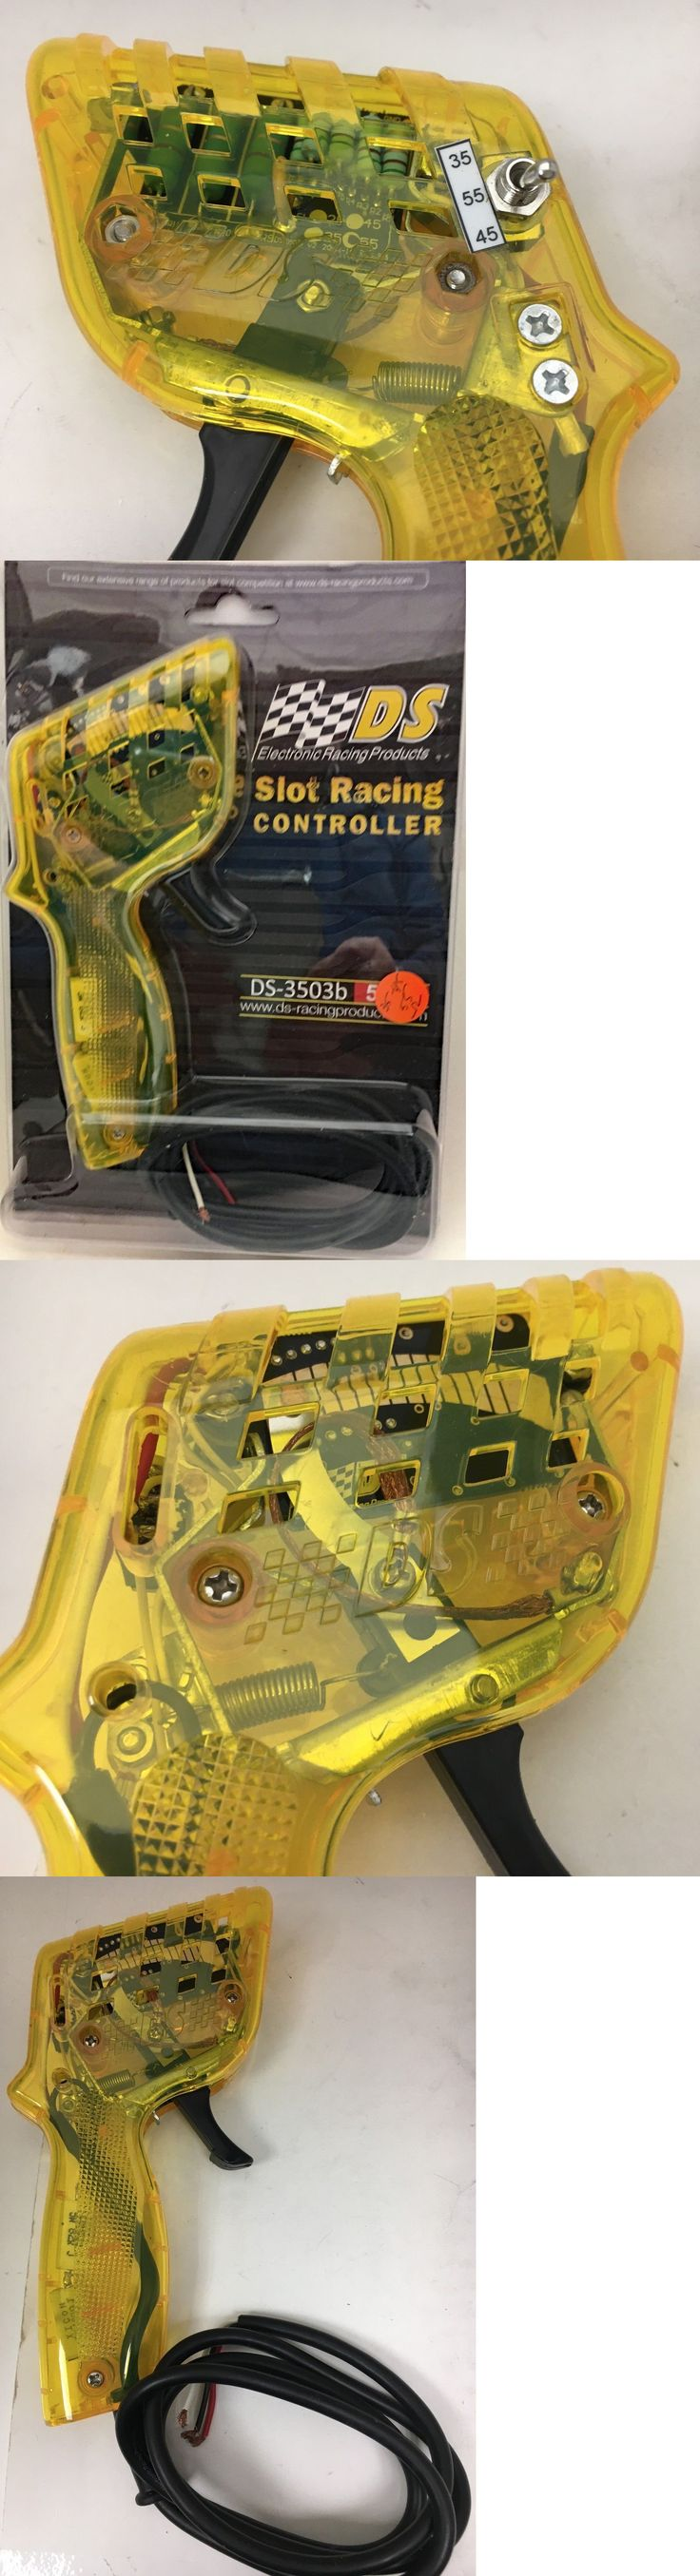 1970-Now 7318: Yellow Ho Slot Car Controller By Ds 55 45 35 Ohm For Tyco Wizzard Afx 1-32 Scale -> BUY IT NOW ONLY: $69.99 on eBay!